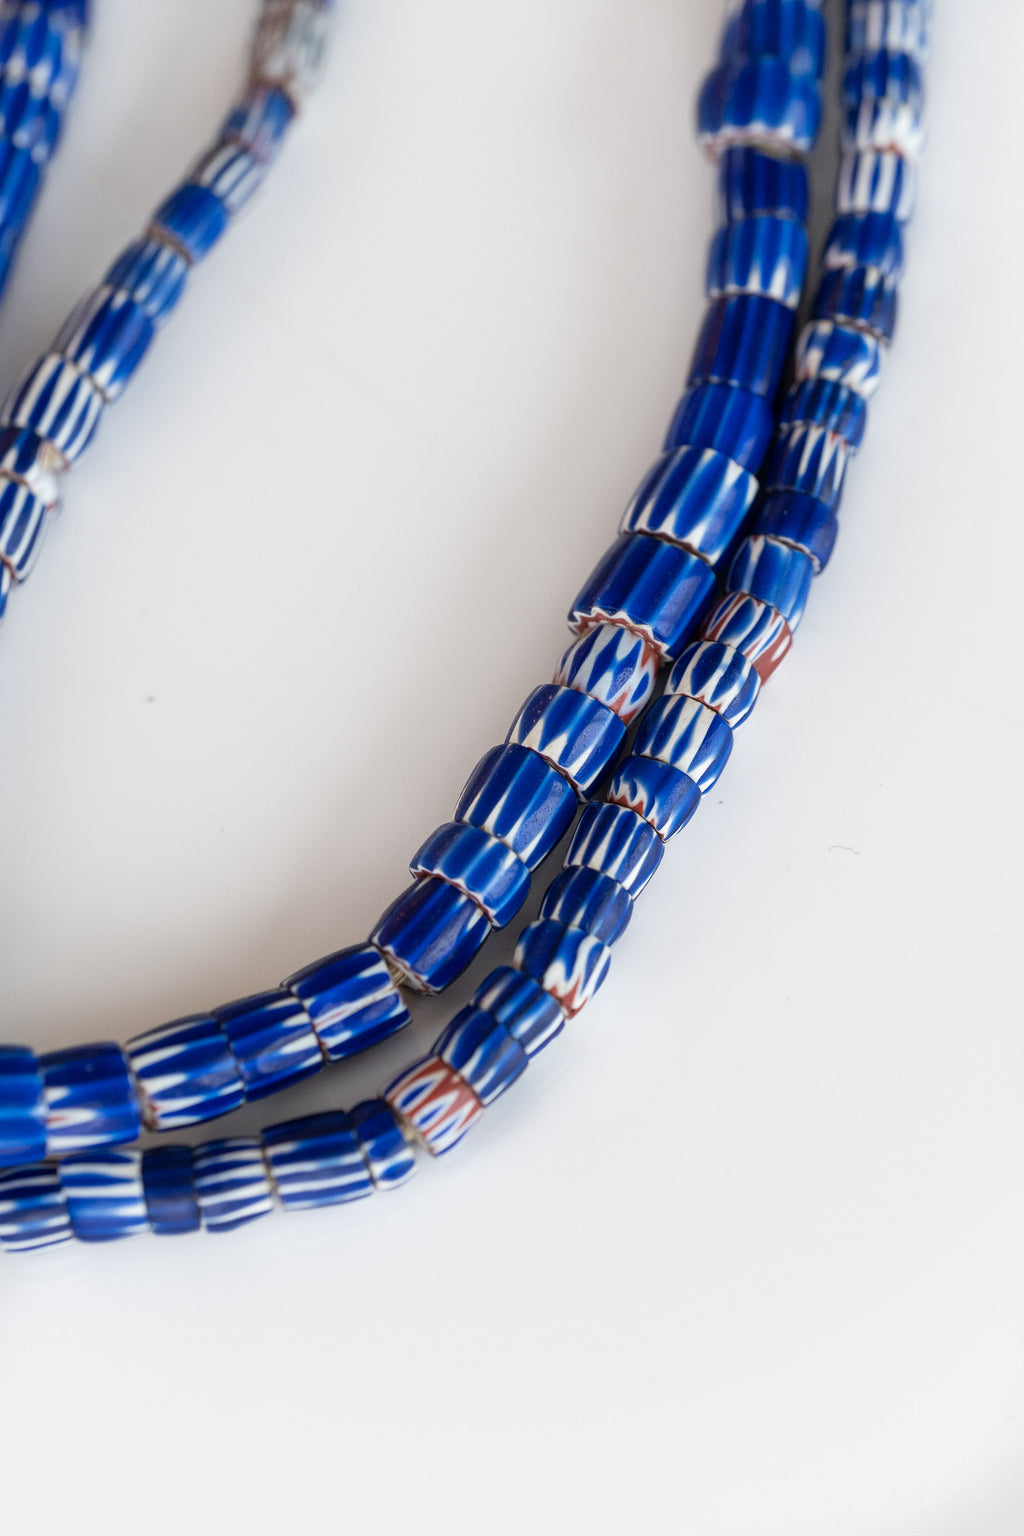 ANTIQUE BLUE STRIPED AFRICAN BEADS